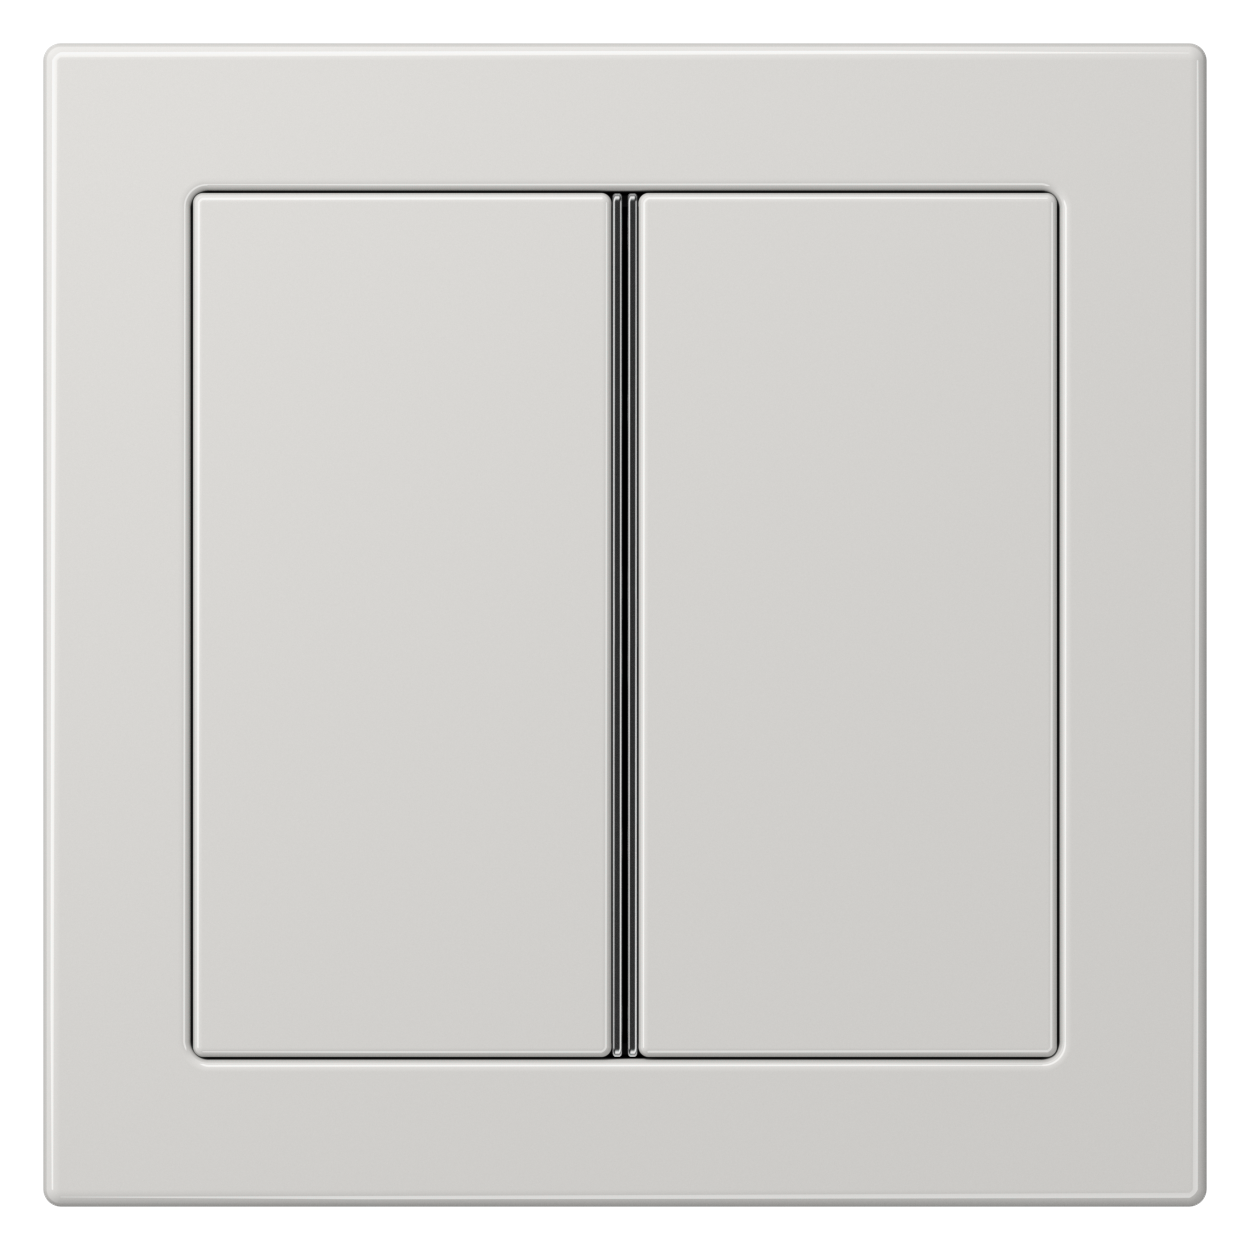 JUNG_Flat_Design_light-grey_2button